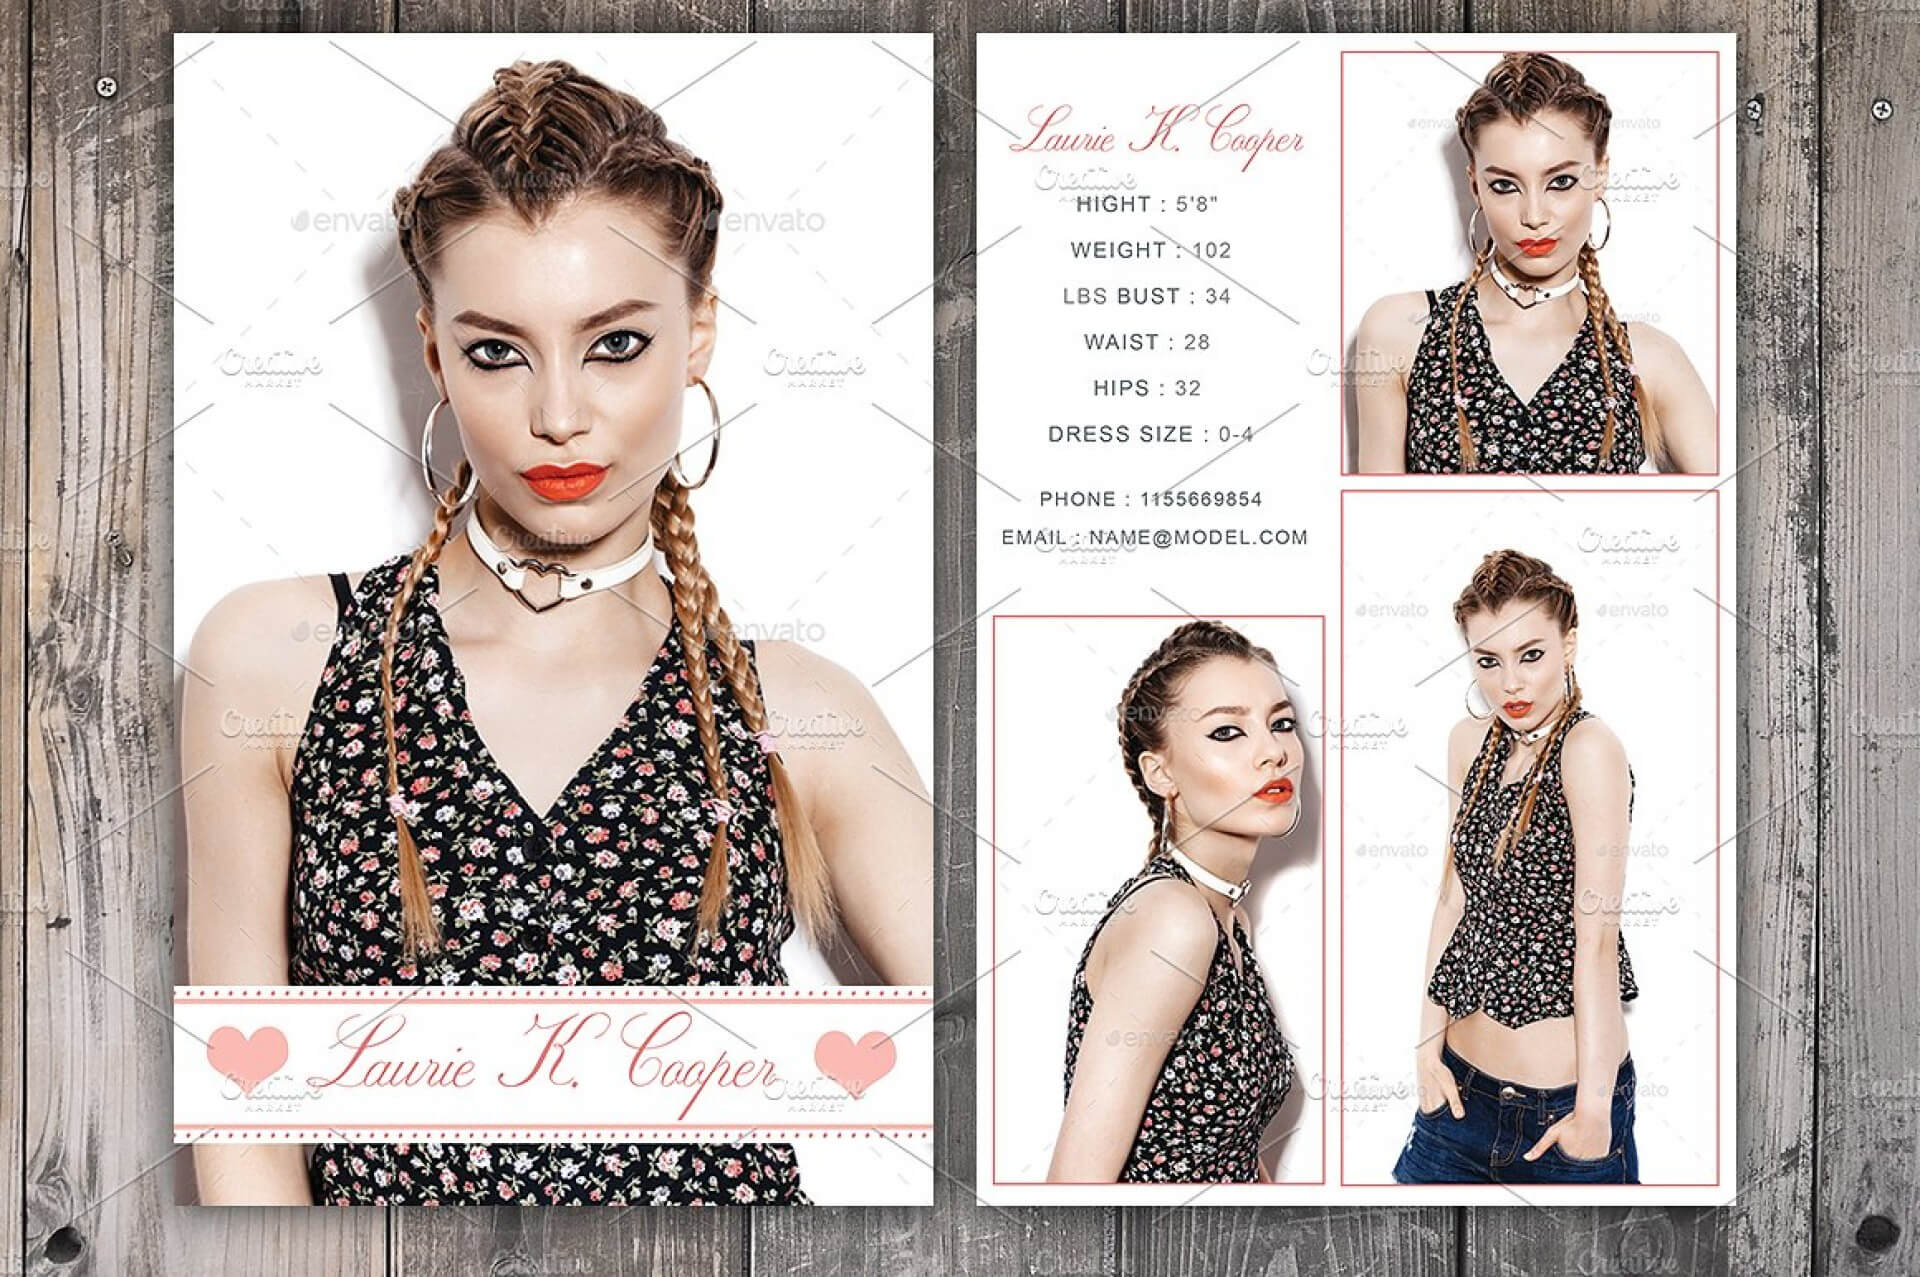 Free Comp Card Template Brochure Templates For Mac Photoshop Pertaining To Model Comp Card Template Free